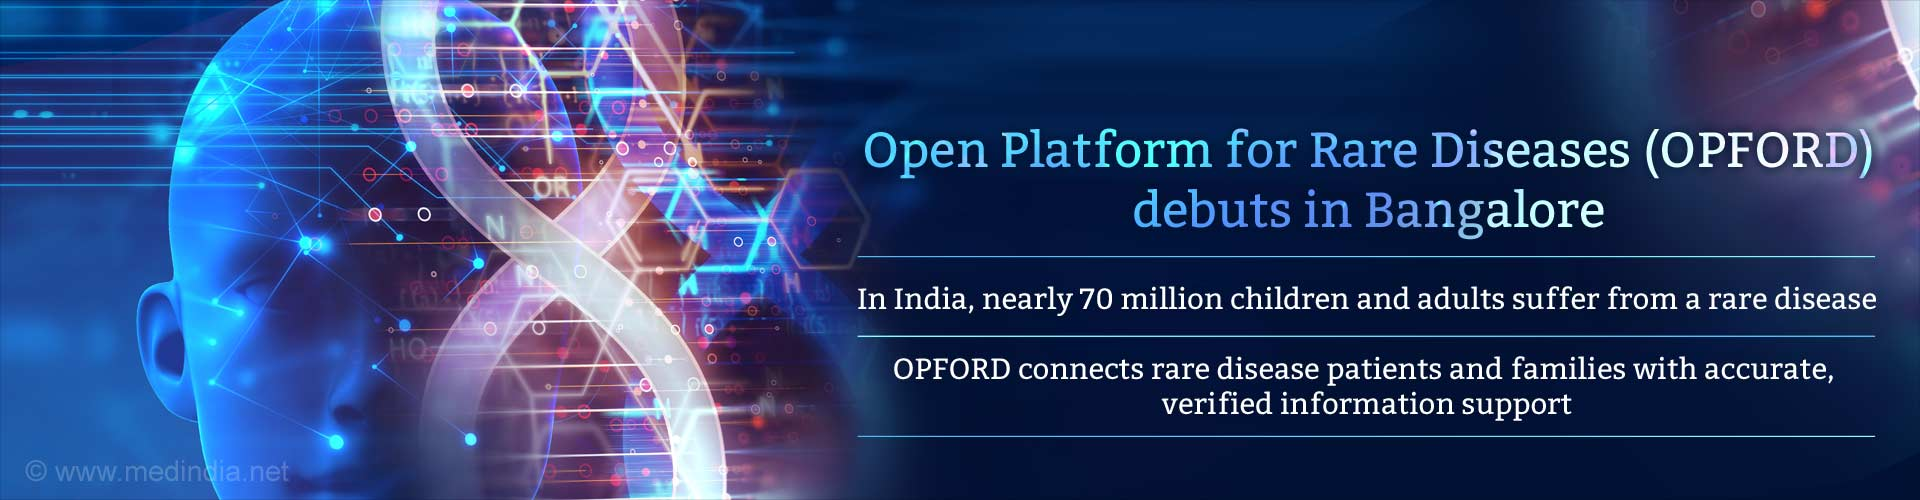 open platform for rare diseases (OPFORD) debuts in bangalore